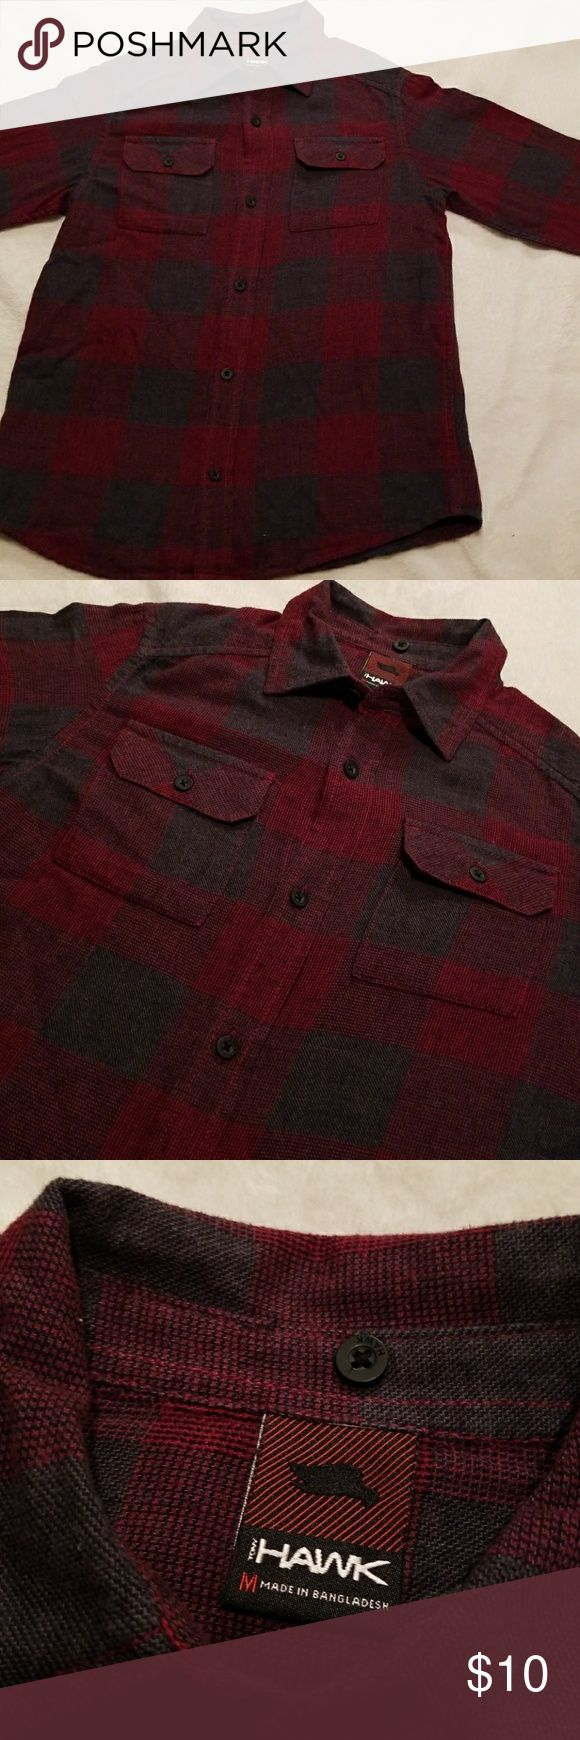 """Boys Tony Hawk Long Sleeve Button Down Size Medium Boys Hawk Long Sleeve Button Down Size Medium. 17"""" bust, 23"""" length. Double breasted pockets. Tony Hawk Shirts & Tops Button Down Shirts"""